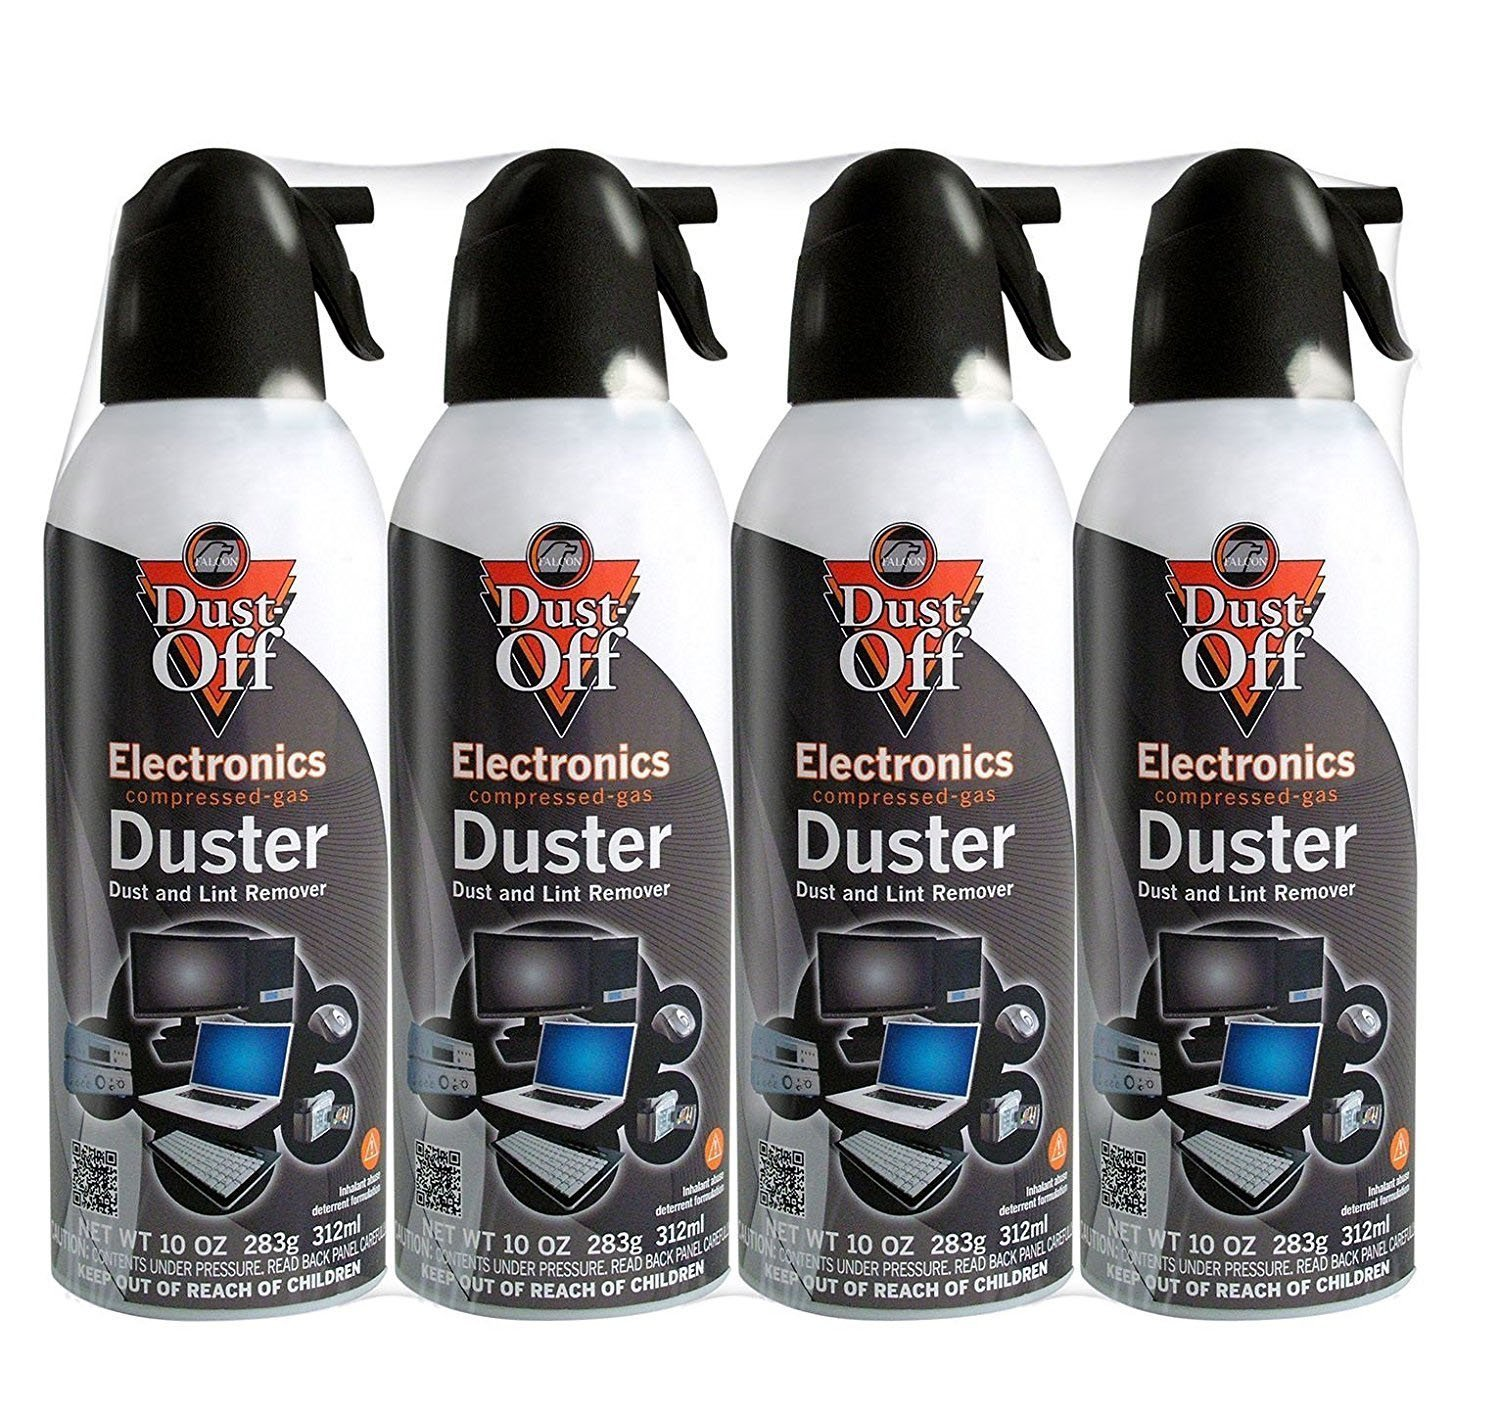 Dust-Off Disposable Compressed Gas Duster, 10 oz Cans, 4 Pack by Dust-Off